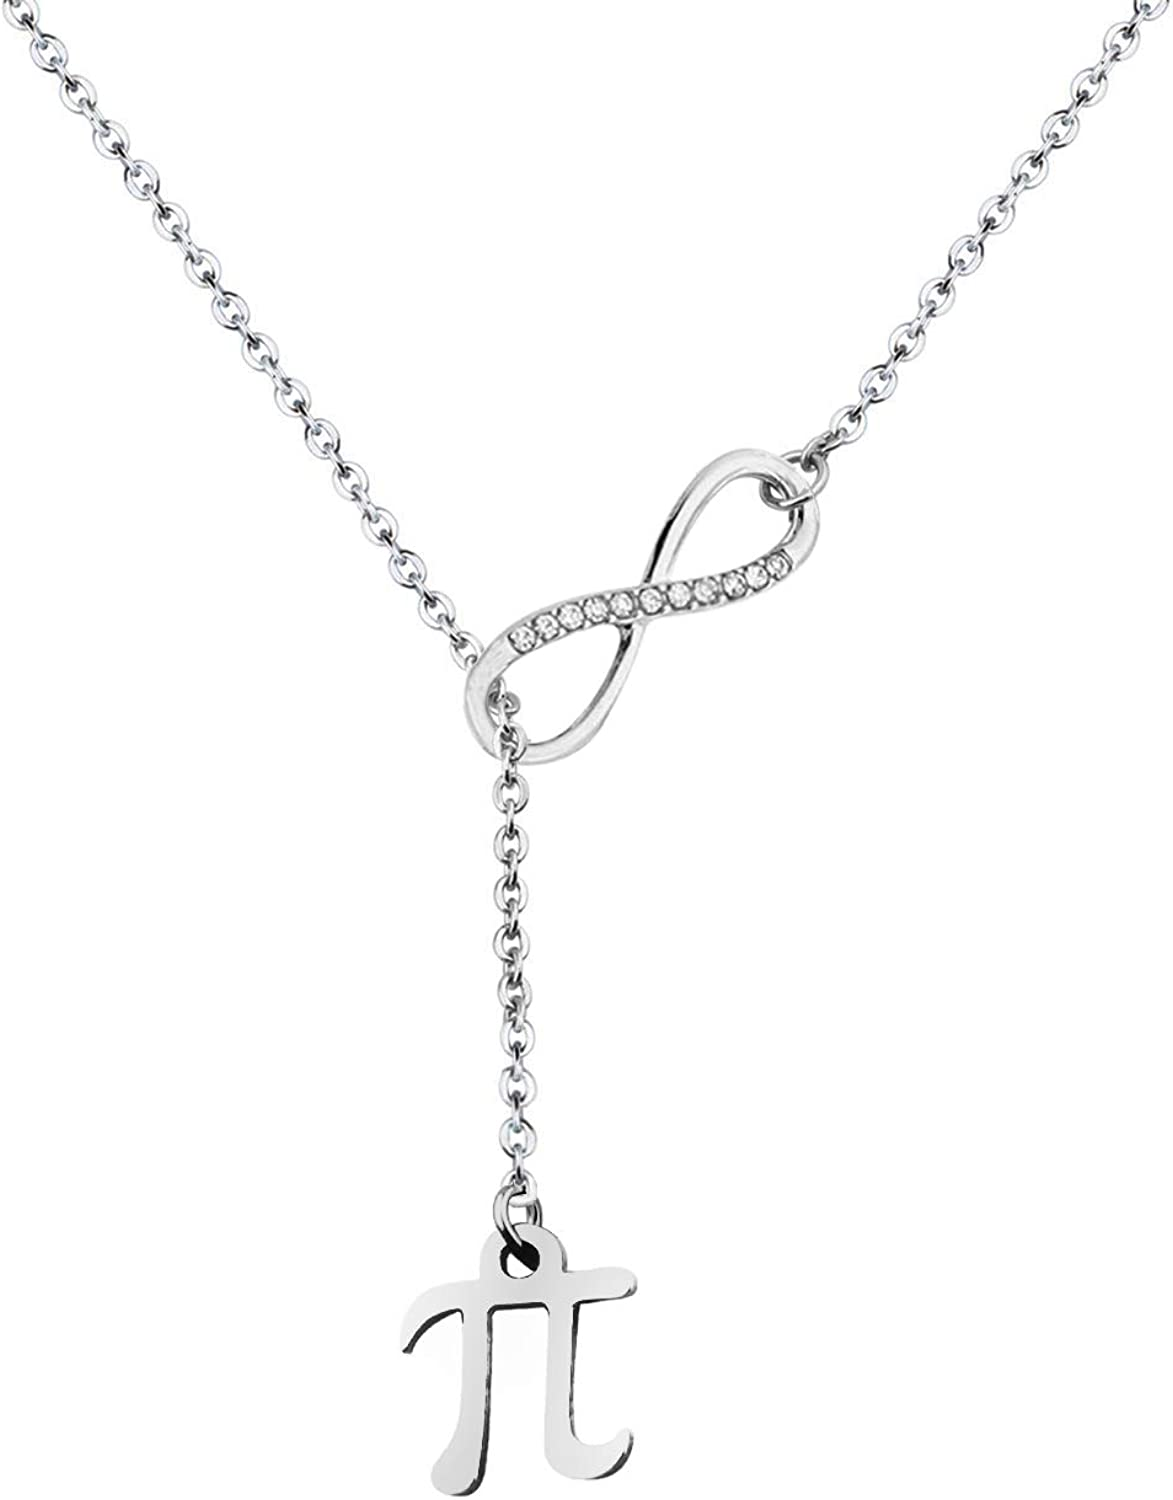 Unisex Pi Sign Infinity Lariat Necklace Bracelet Back to School Gift Science Jewelry